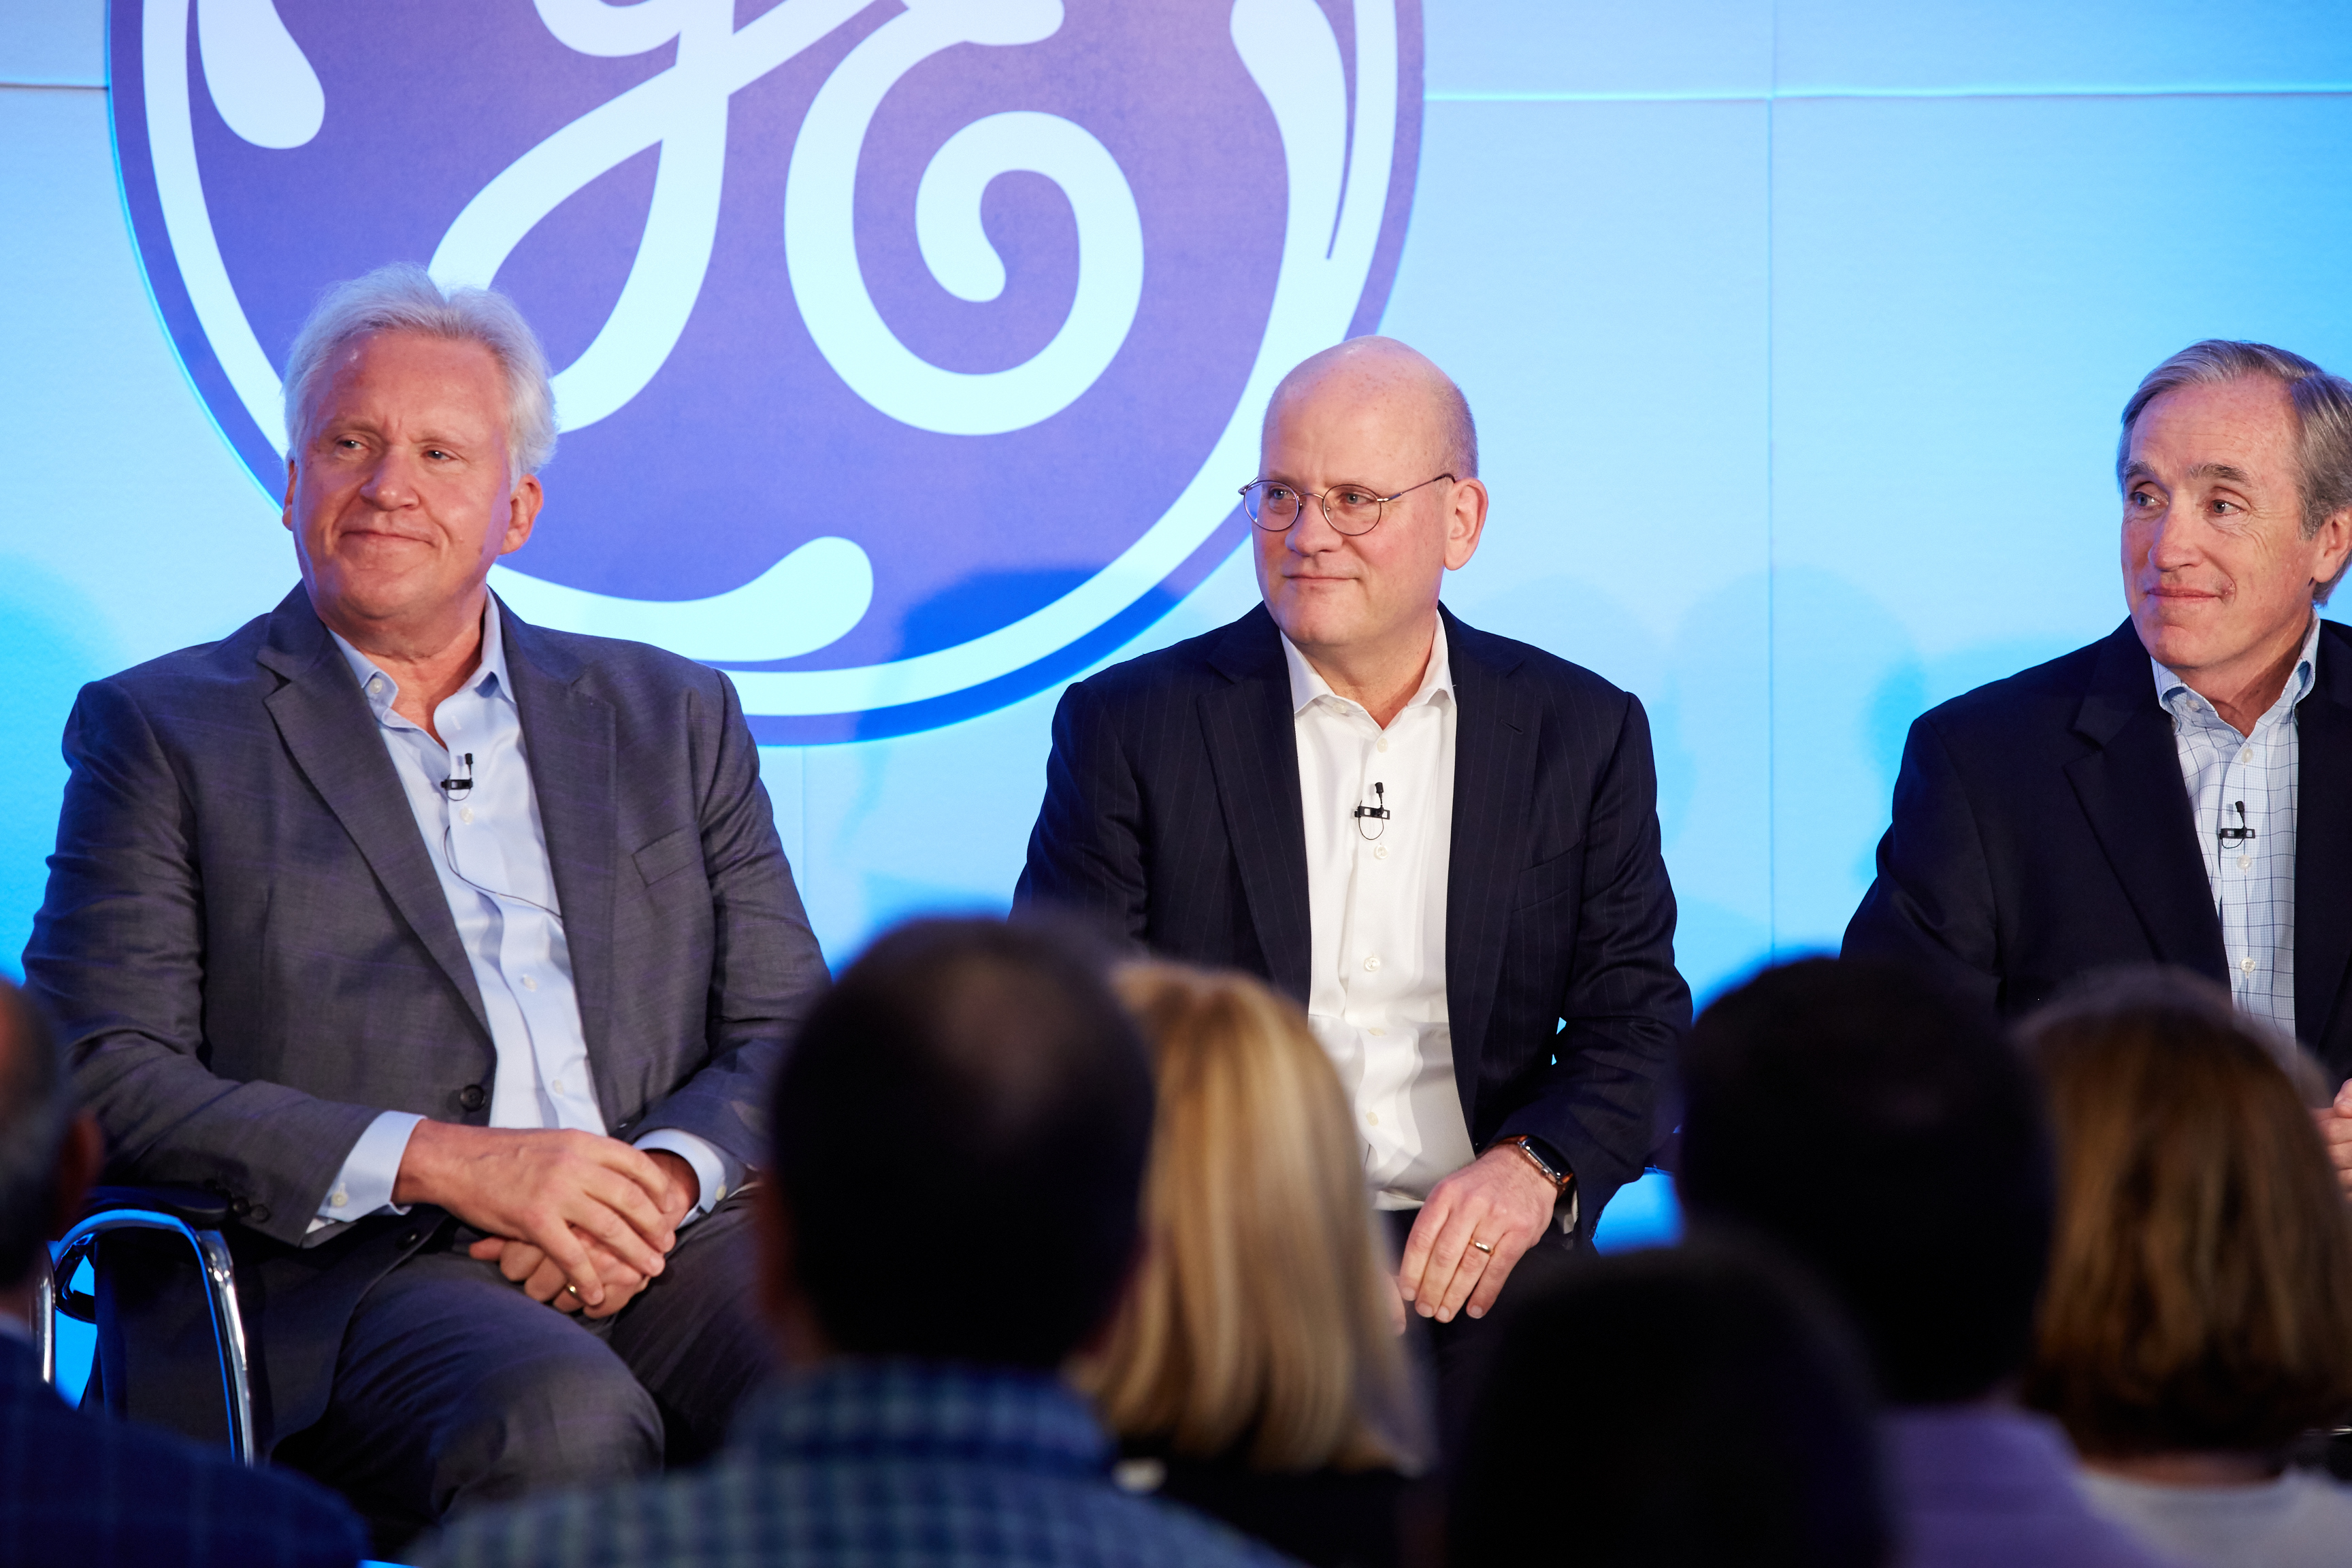 CO John Flannery, STATING THE OBVIOUS AT GE; SHOCKING WALL STREET